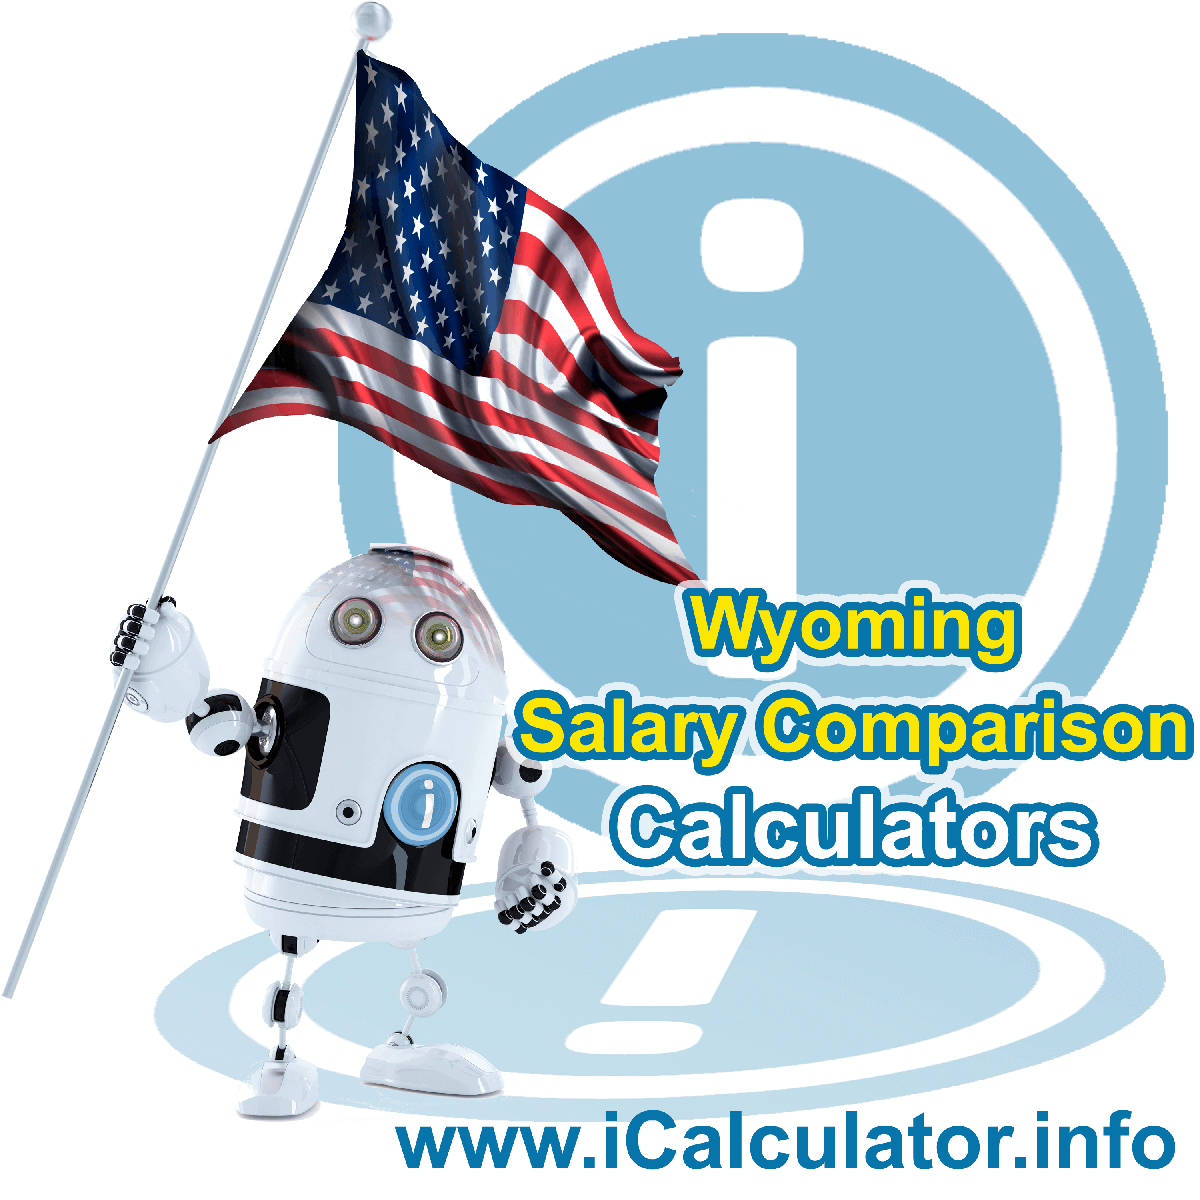 Wyoming Salary Comparison Calculator 2019 | iCalculator | The Wyoming Salary Comparison Calculator allows you to quickly calculate and compare upto 6 salaries in Wyoming or between other states for the 2019 tax year and historical tax years. Its an excellent tool for jobseekers, pay raise comparison and comparison of salaries between different US States